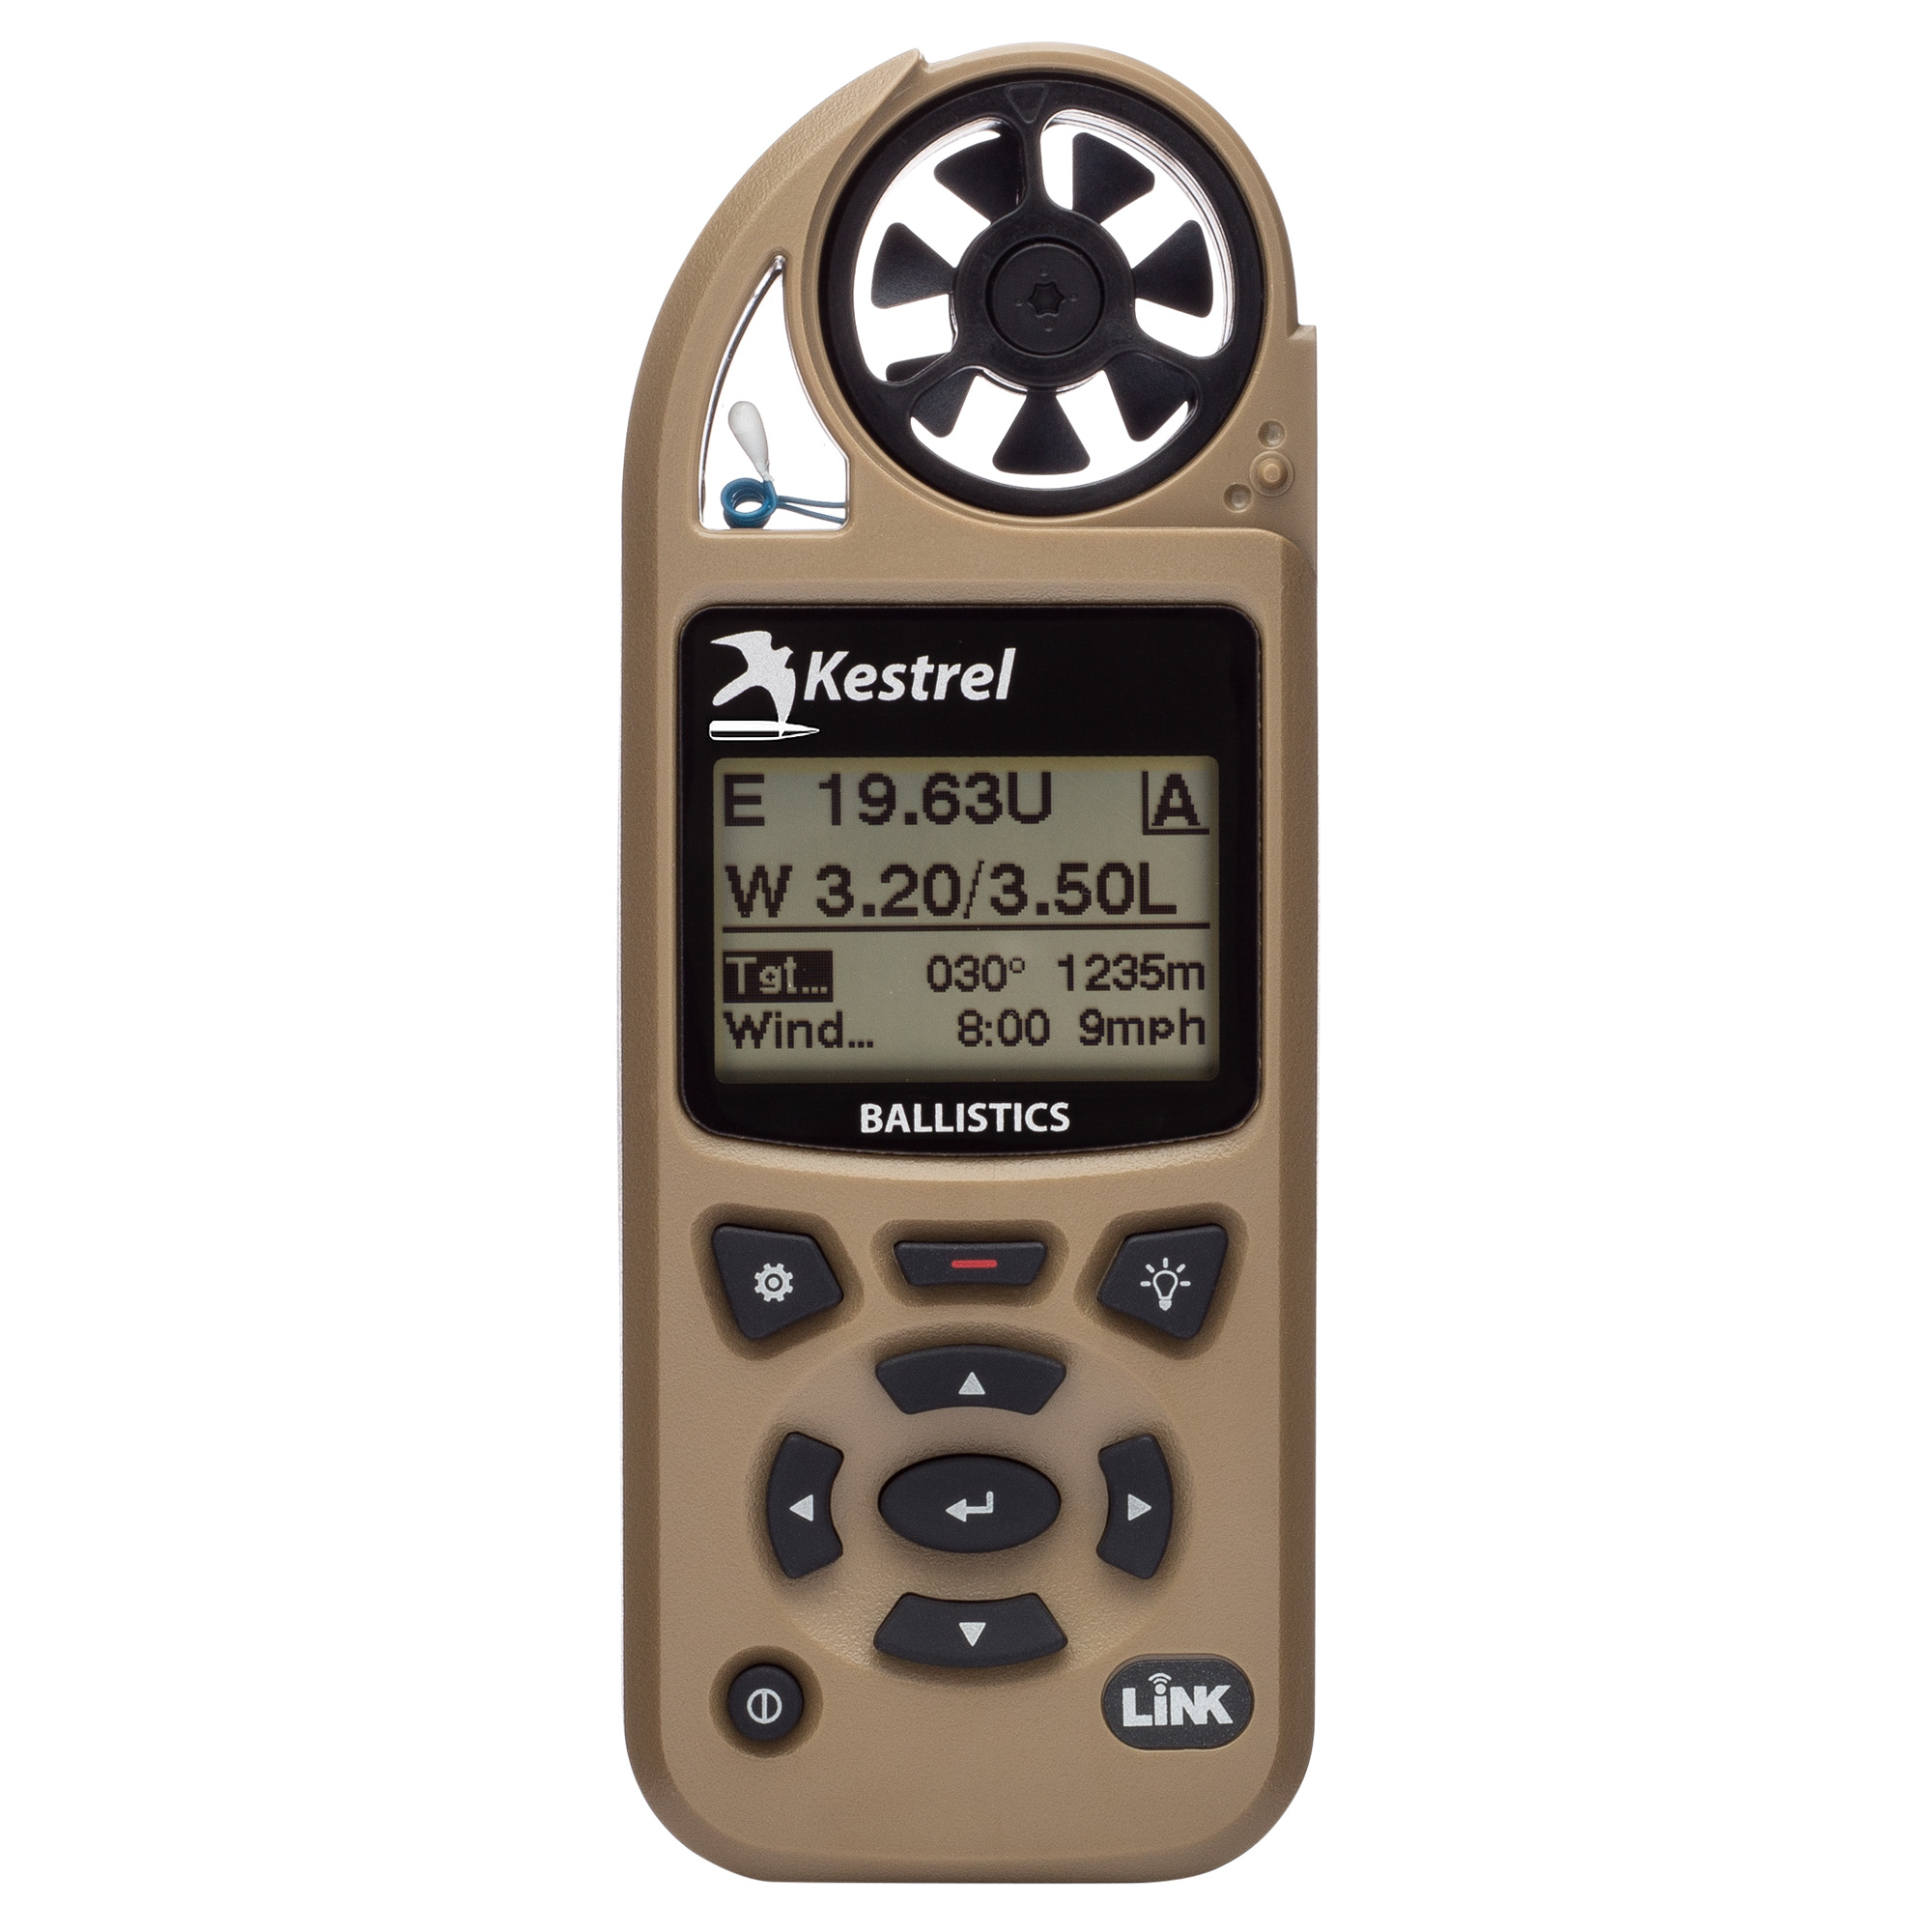 "The Kestrel 5700. This sort of replaced the Sportsman as now a more affordable option. So what's the difference in the 5700 and the Elite Model? The Elite has the proprietary Applied Ballistics software. The 5700 has ballistics software"" but it's not Applied Ballistics. If you want the best"" get the Elite. Some have heard of the new Easy Mode. This feature is on both the 5700 and Elite. It walks you through a simple step-by-step guide to using your Kestrel so you can learn faster and start shooting long range with confidence."